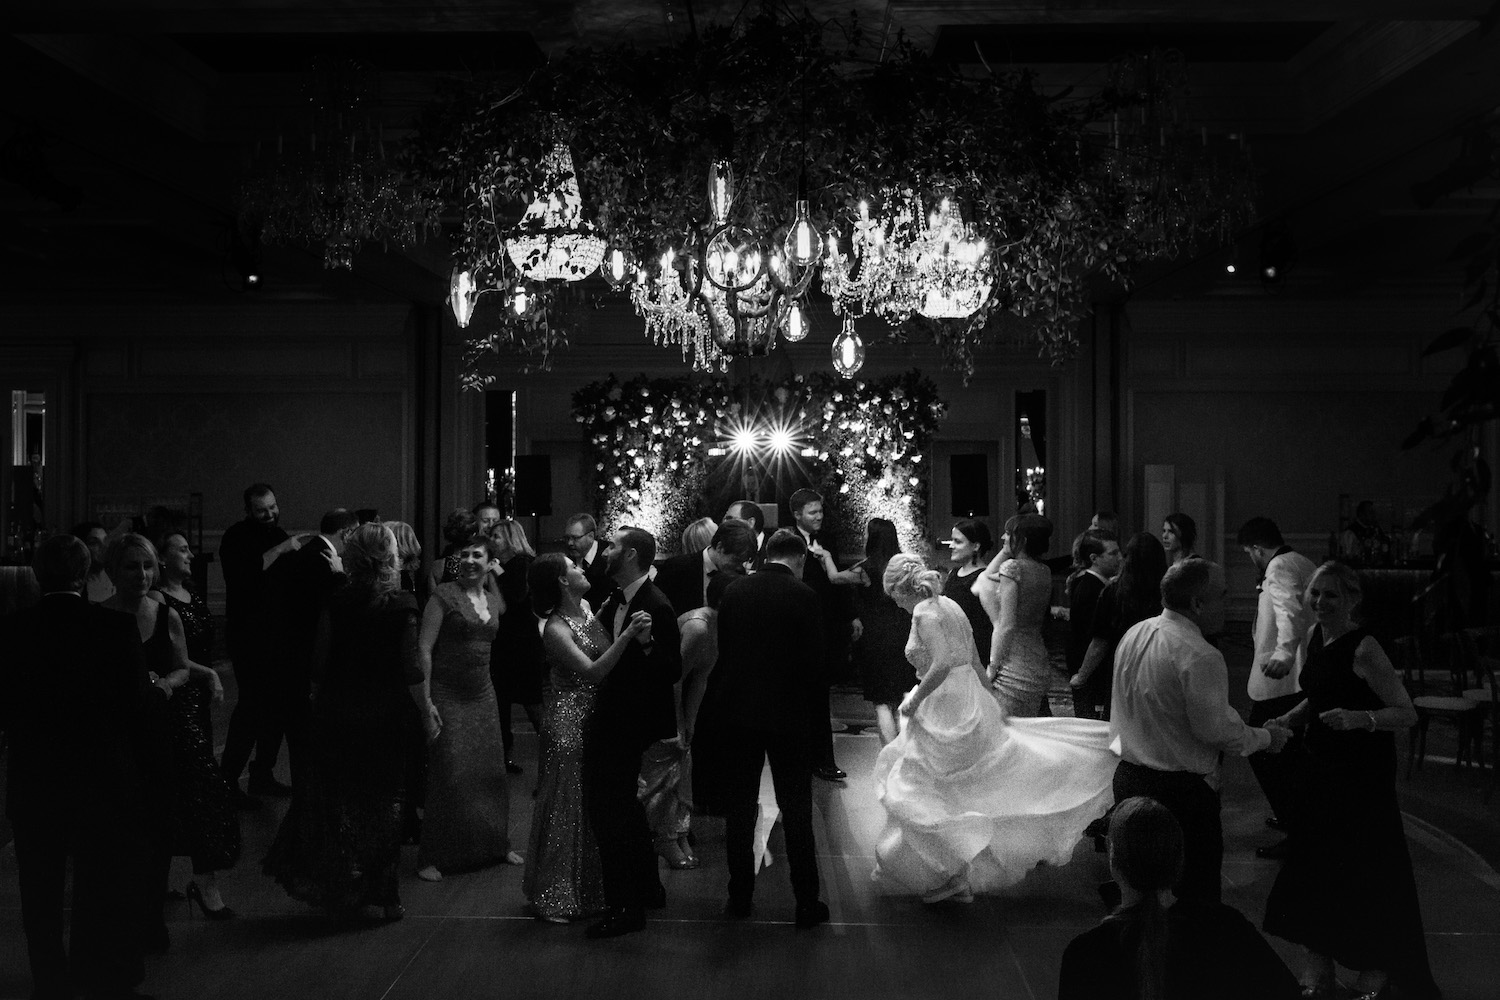 Classic, documentary dancing photos at weddings can be hard to make happen but this is one of our favorites from the last year. Margie's reception dress had a gorgeous flowing skirt that was so fun to photograph!